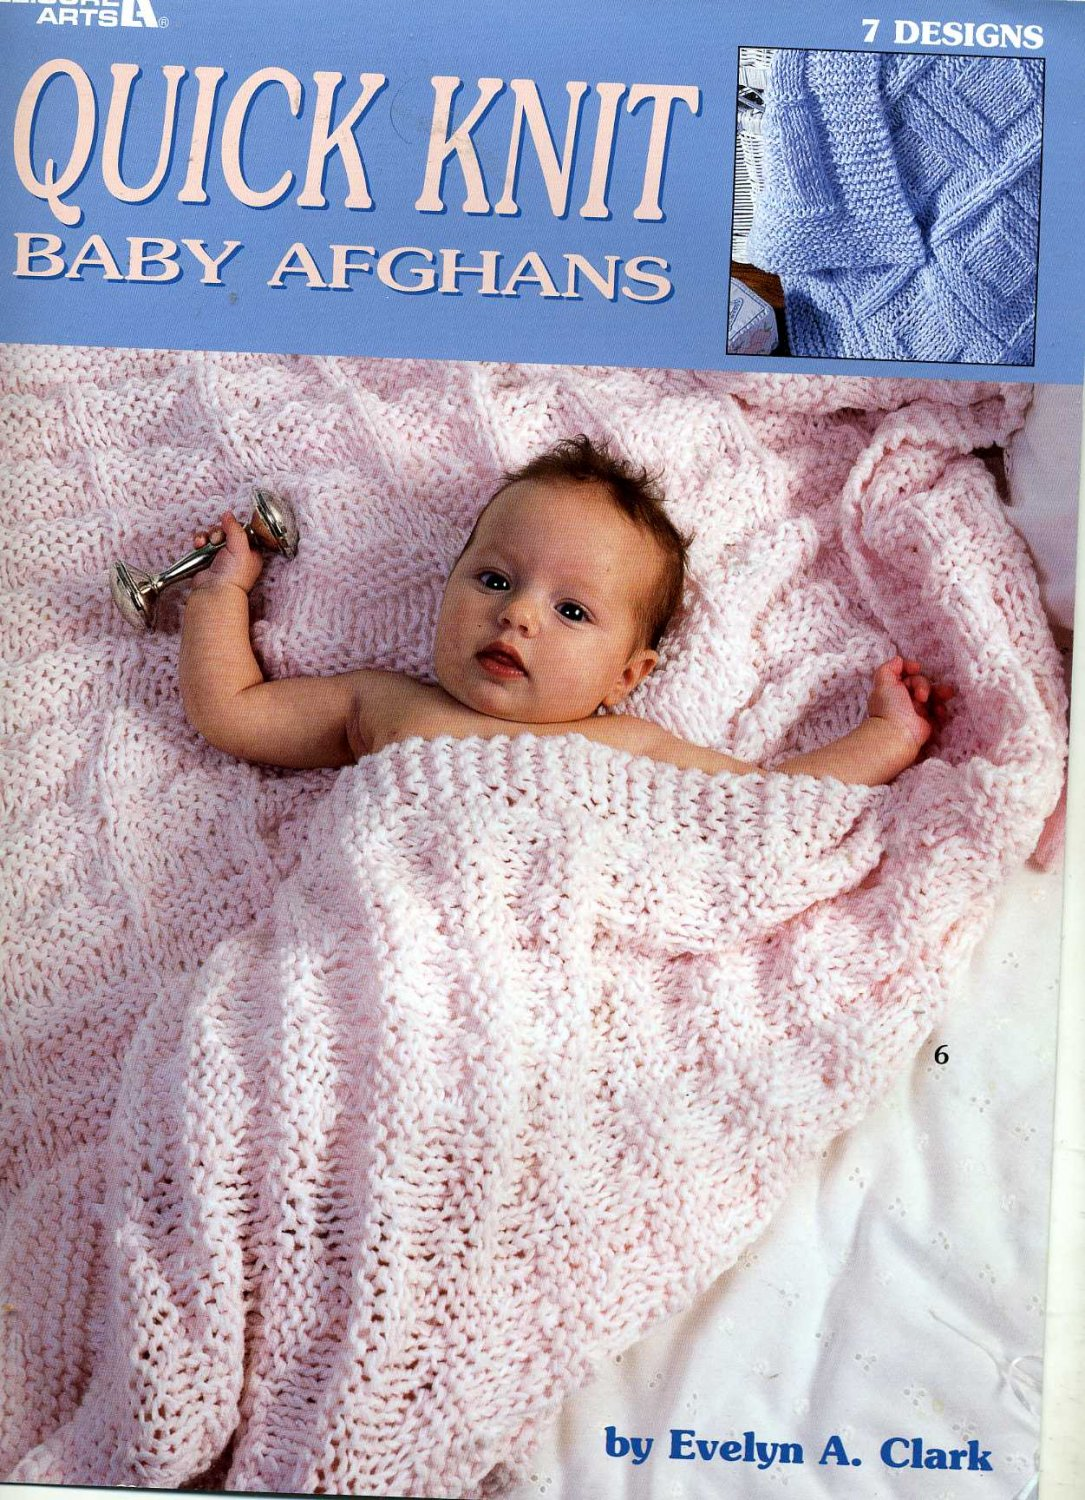 Quick Knit Baby Afghans - 7 Knitting Pattern Designs